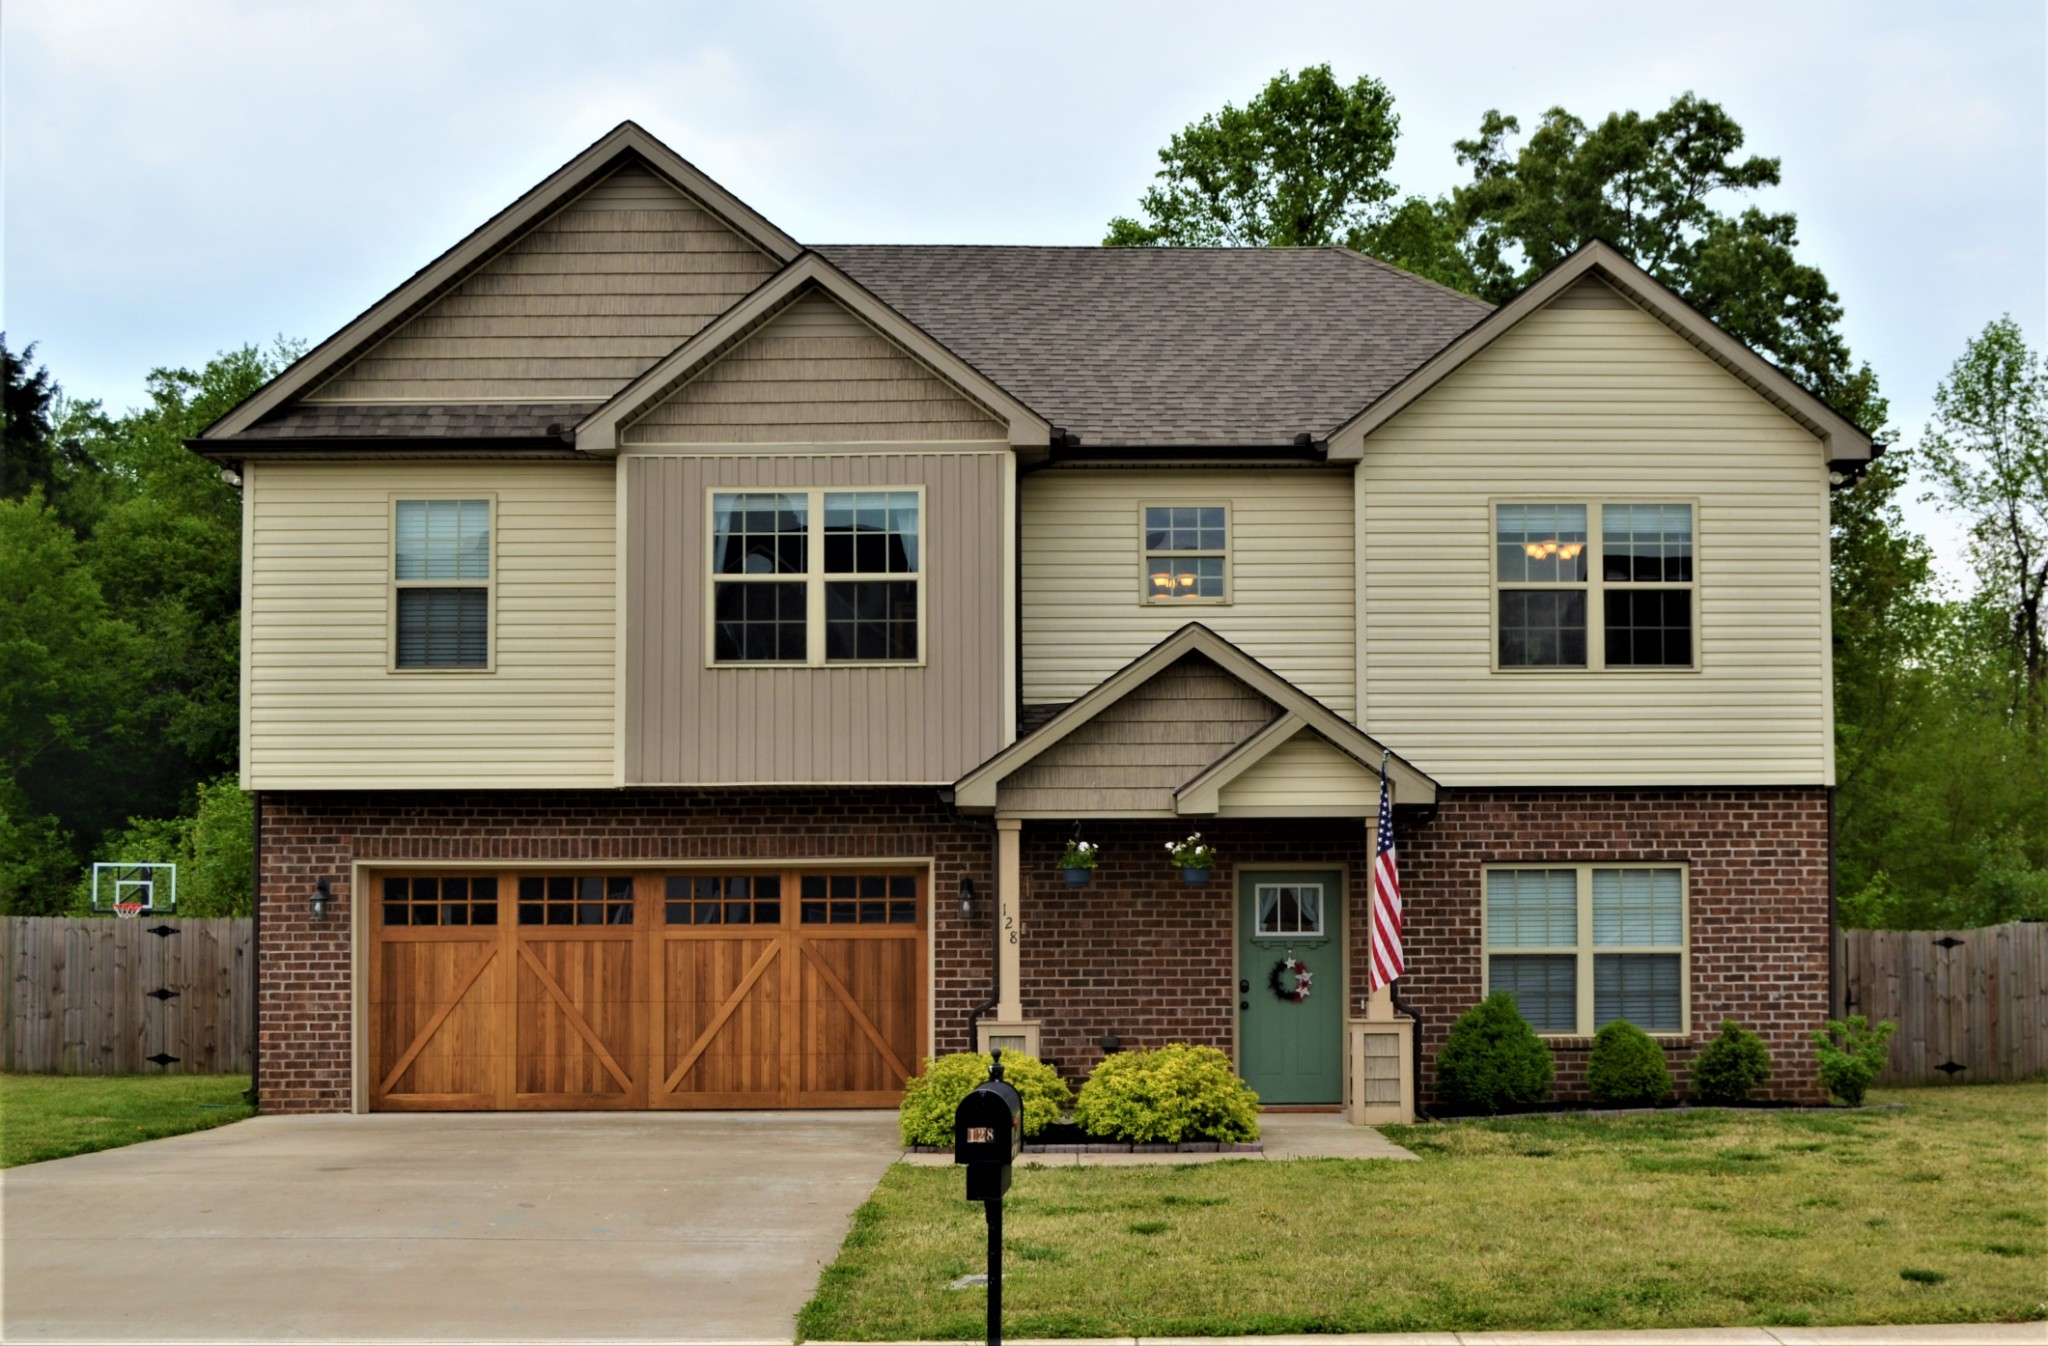 128 Thomas Traylor Ln Property Photo - Clarksville, TN real estate listing